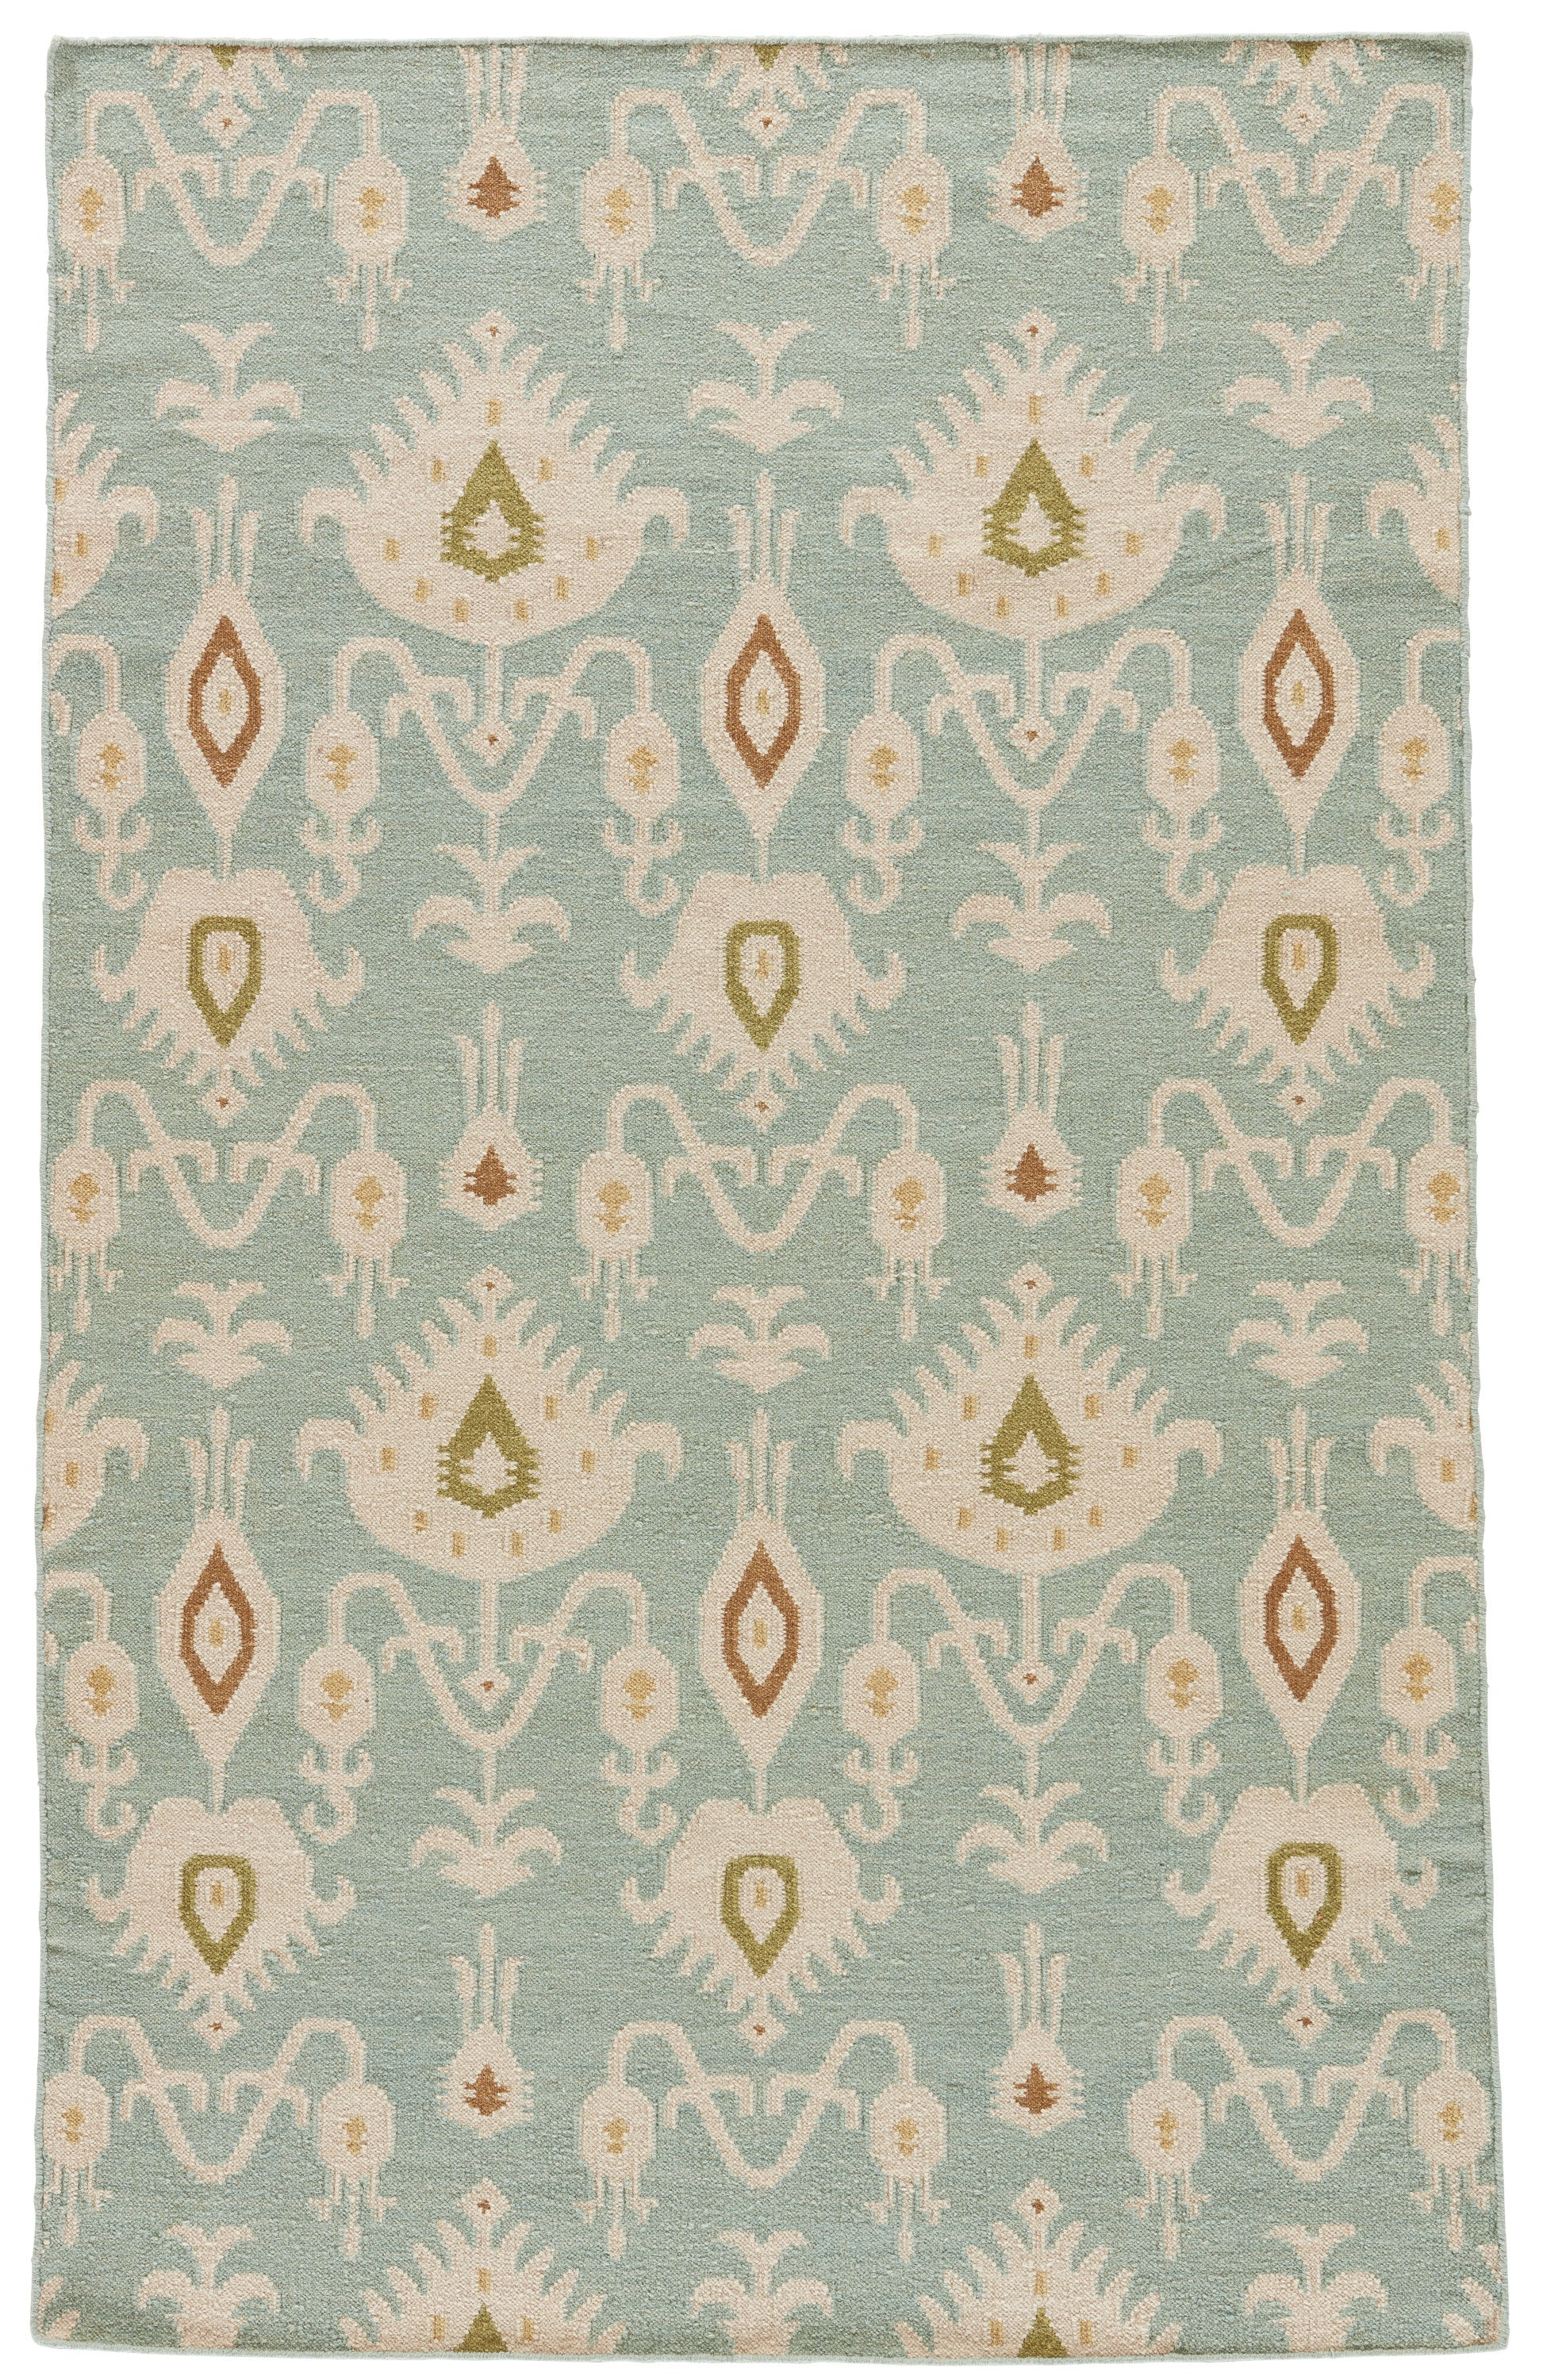 Rectangle Blue Ikat Dhurrie Wool Contemporary recommended for Bedroom, Bathroom, Dining Room, Office, Hallway, Living Room